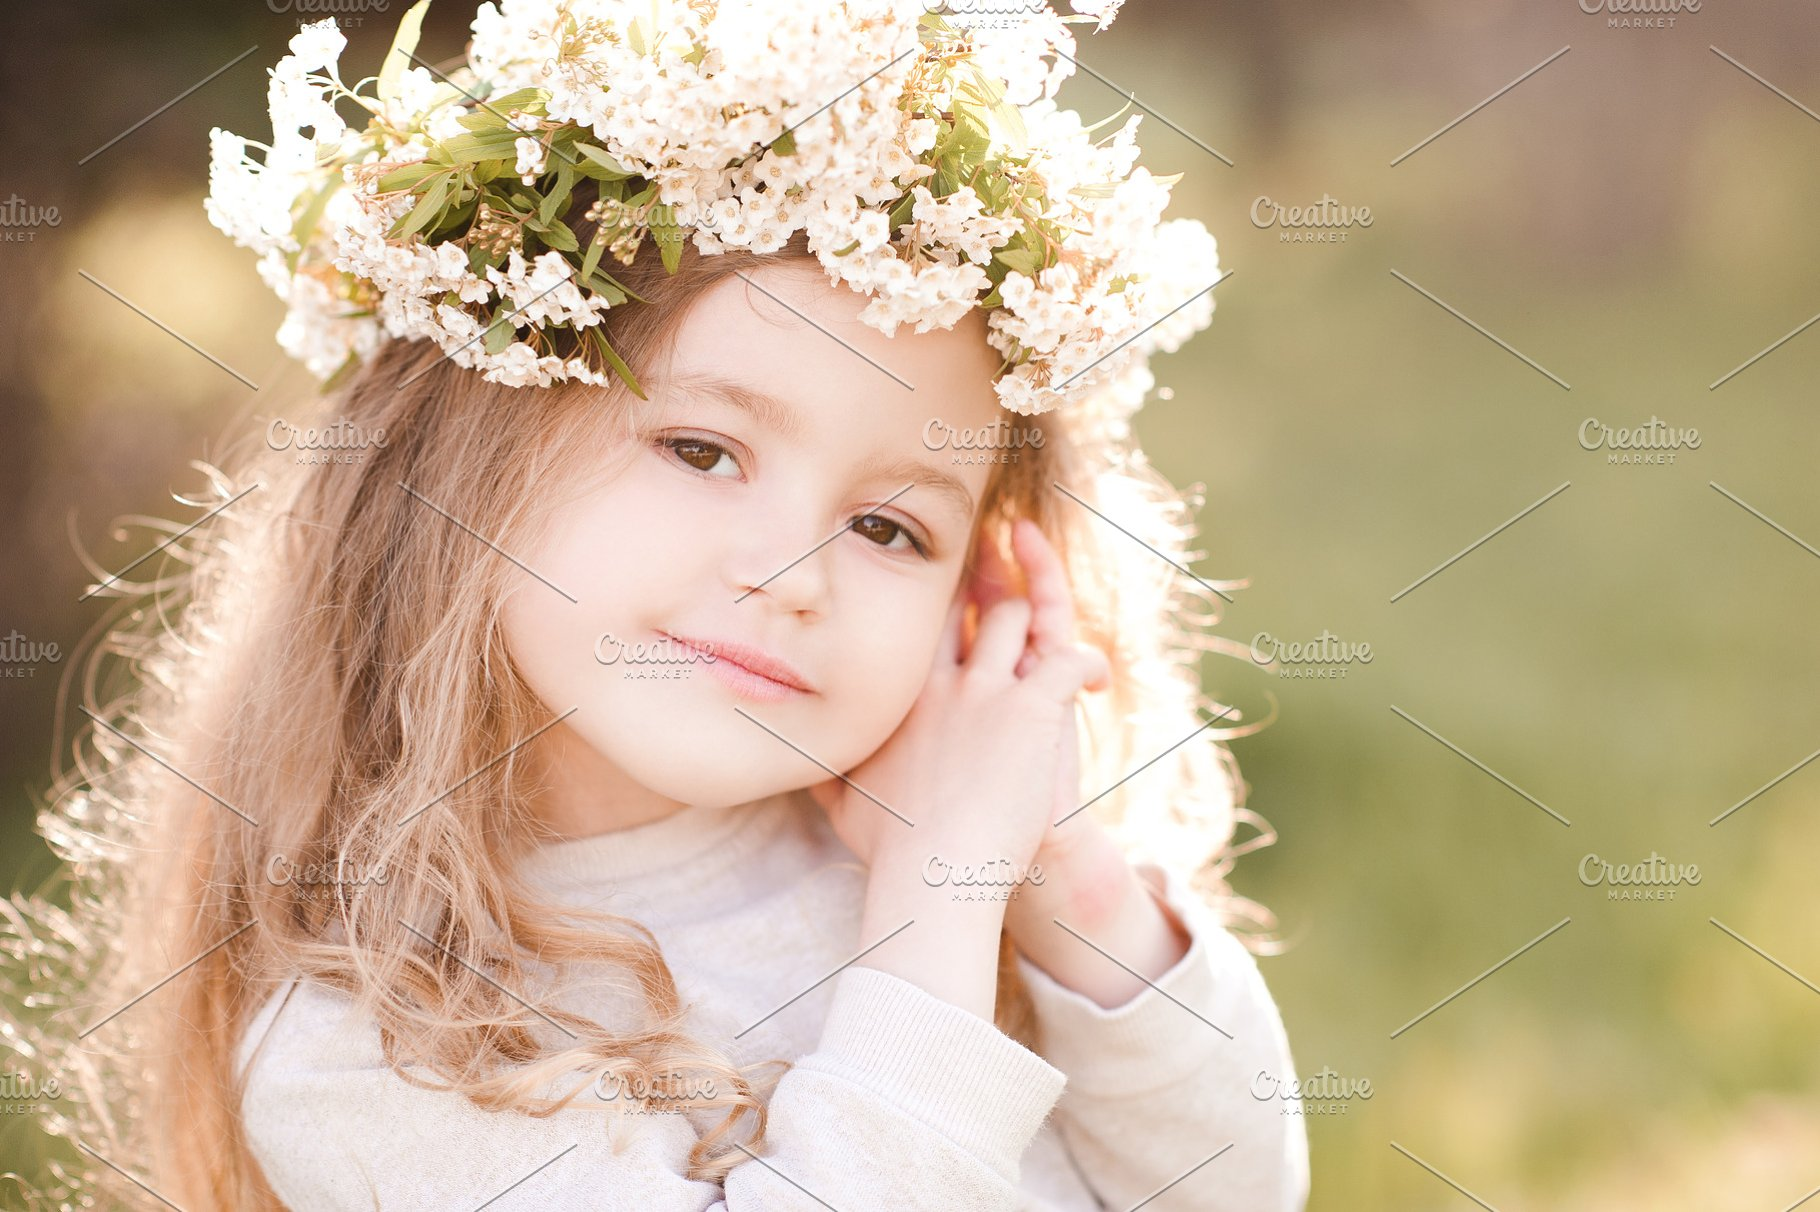 Smiling Baby Girl High Quality People Images Creative